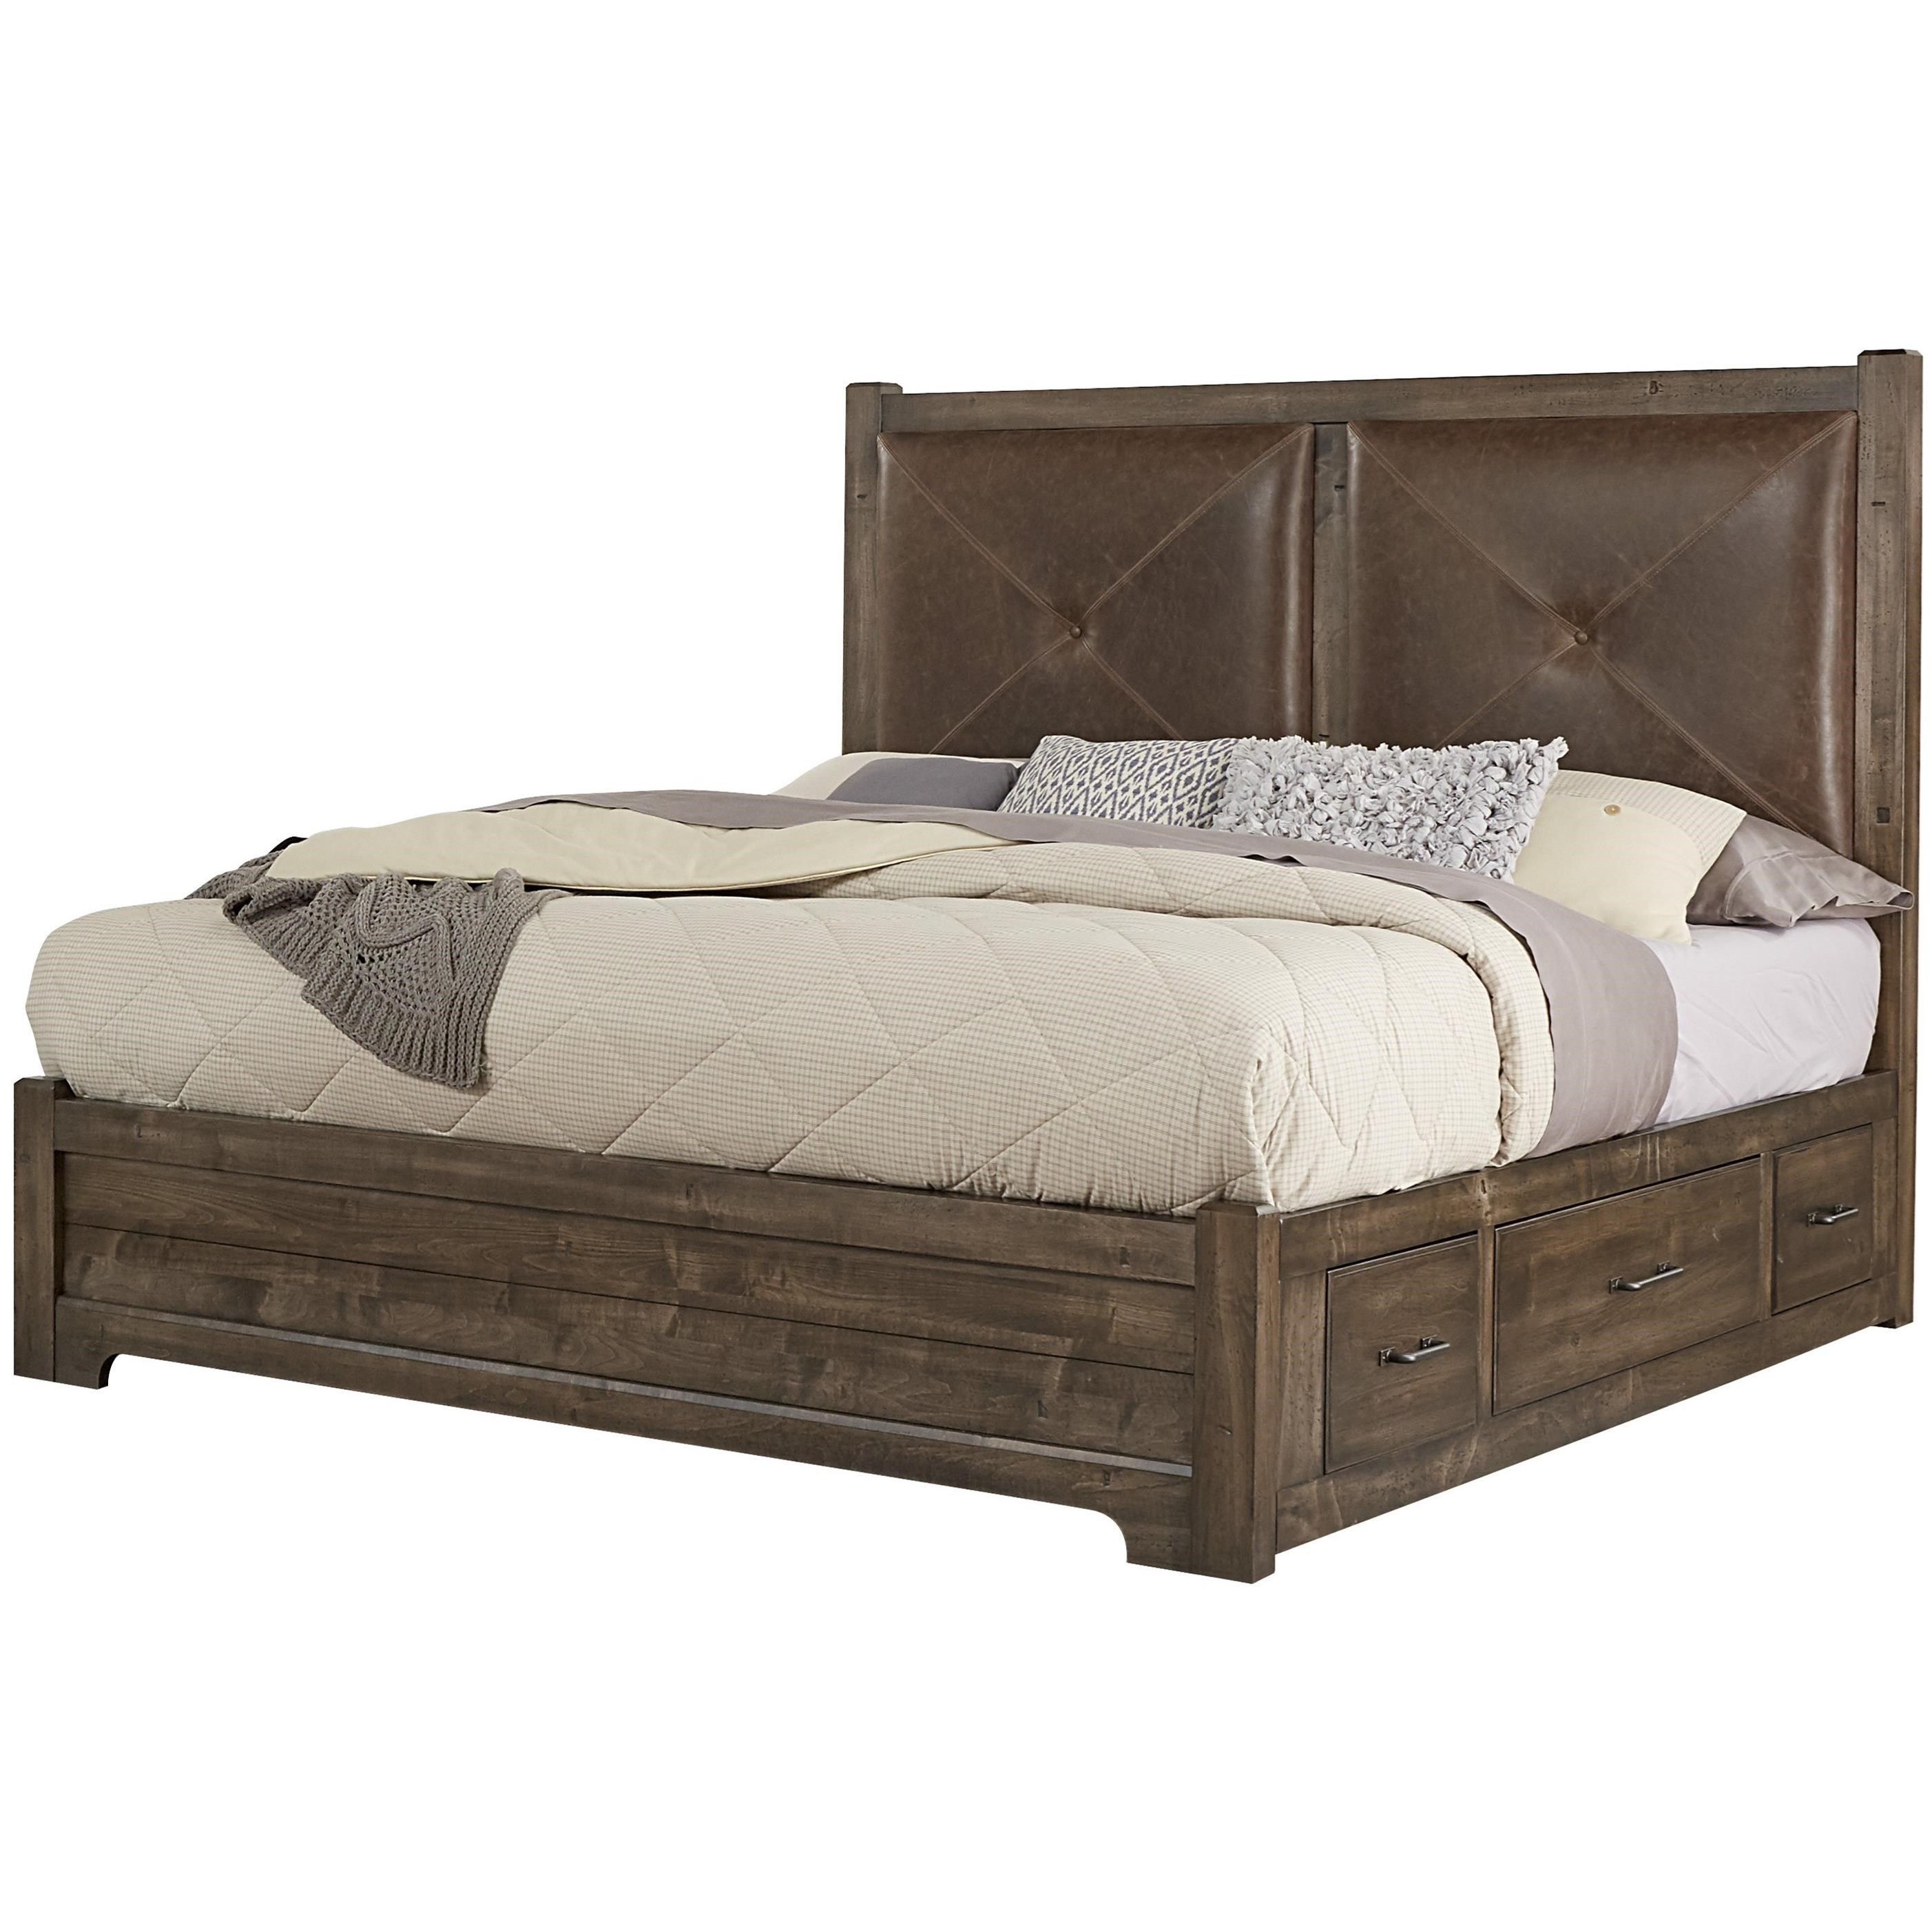 Leather Bed Frame Cool Rustic King Leather Bed With Side Storage By Artisan Post By Vaughan Bassett At Becker Furniture World